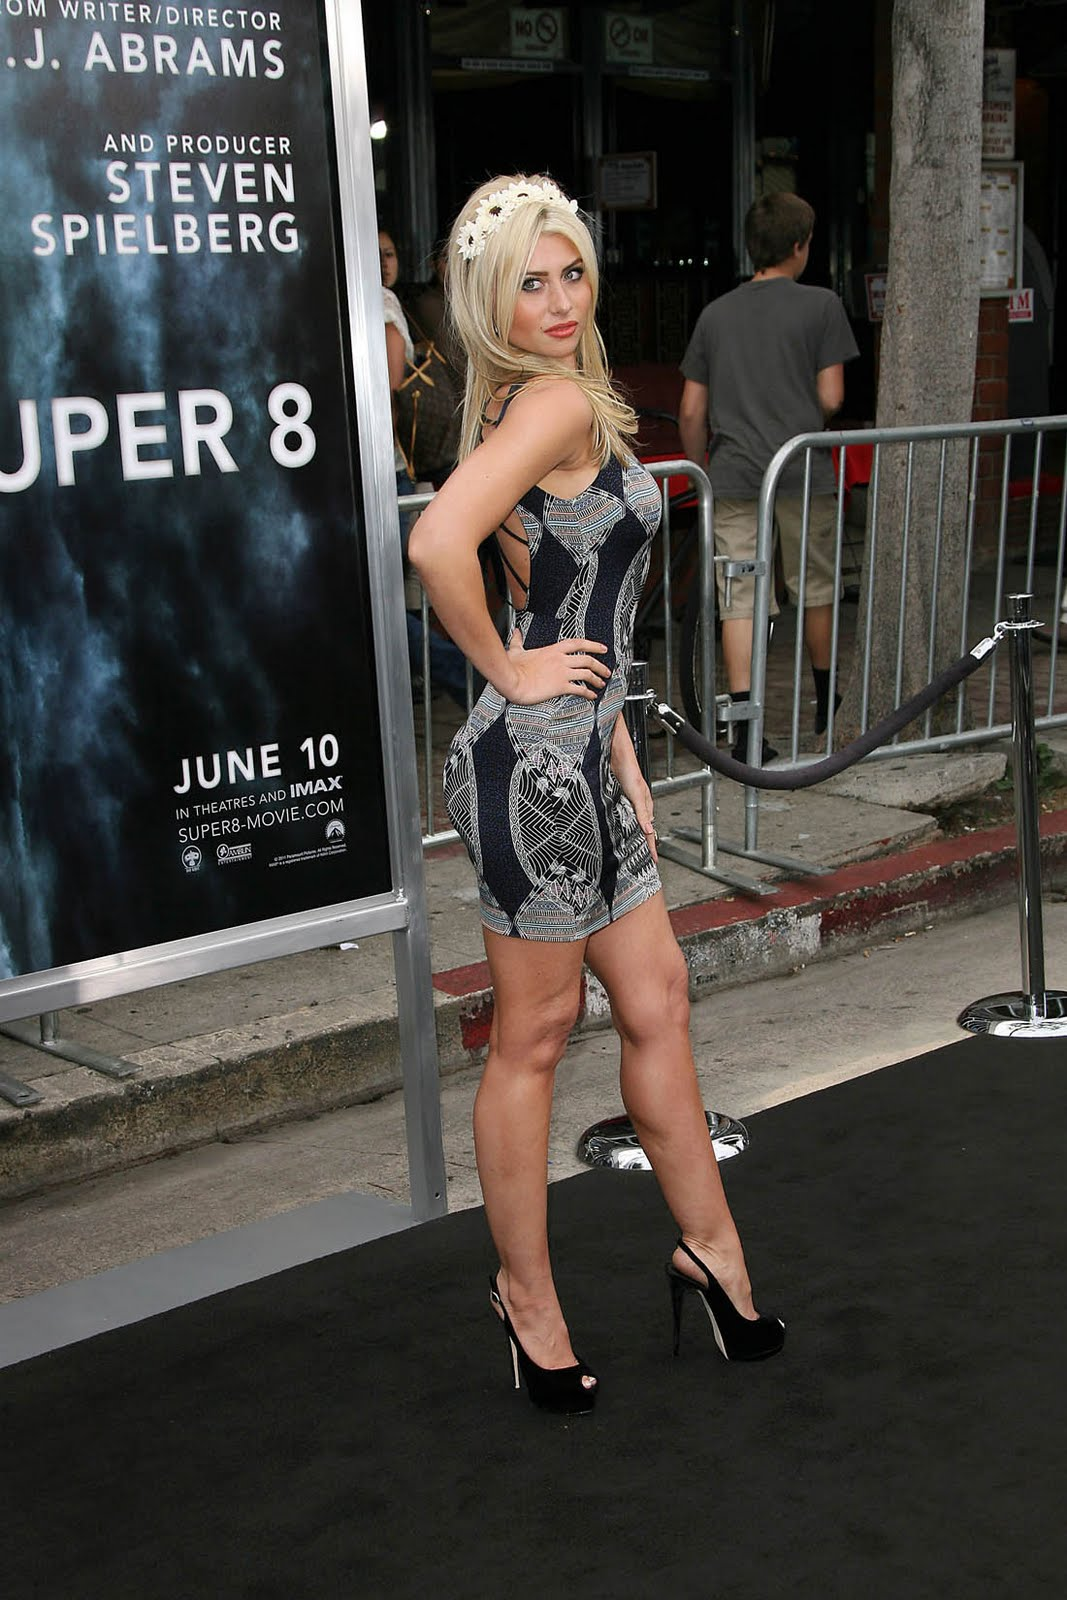 By D Ways: Aly Michalka Looking Too Hot